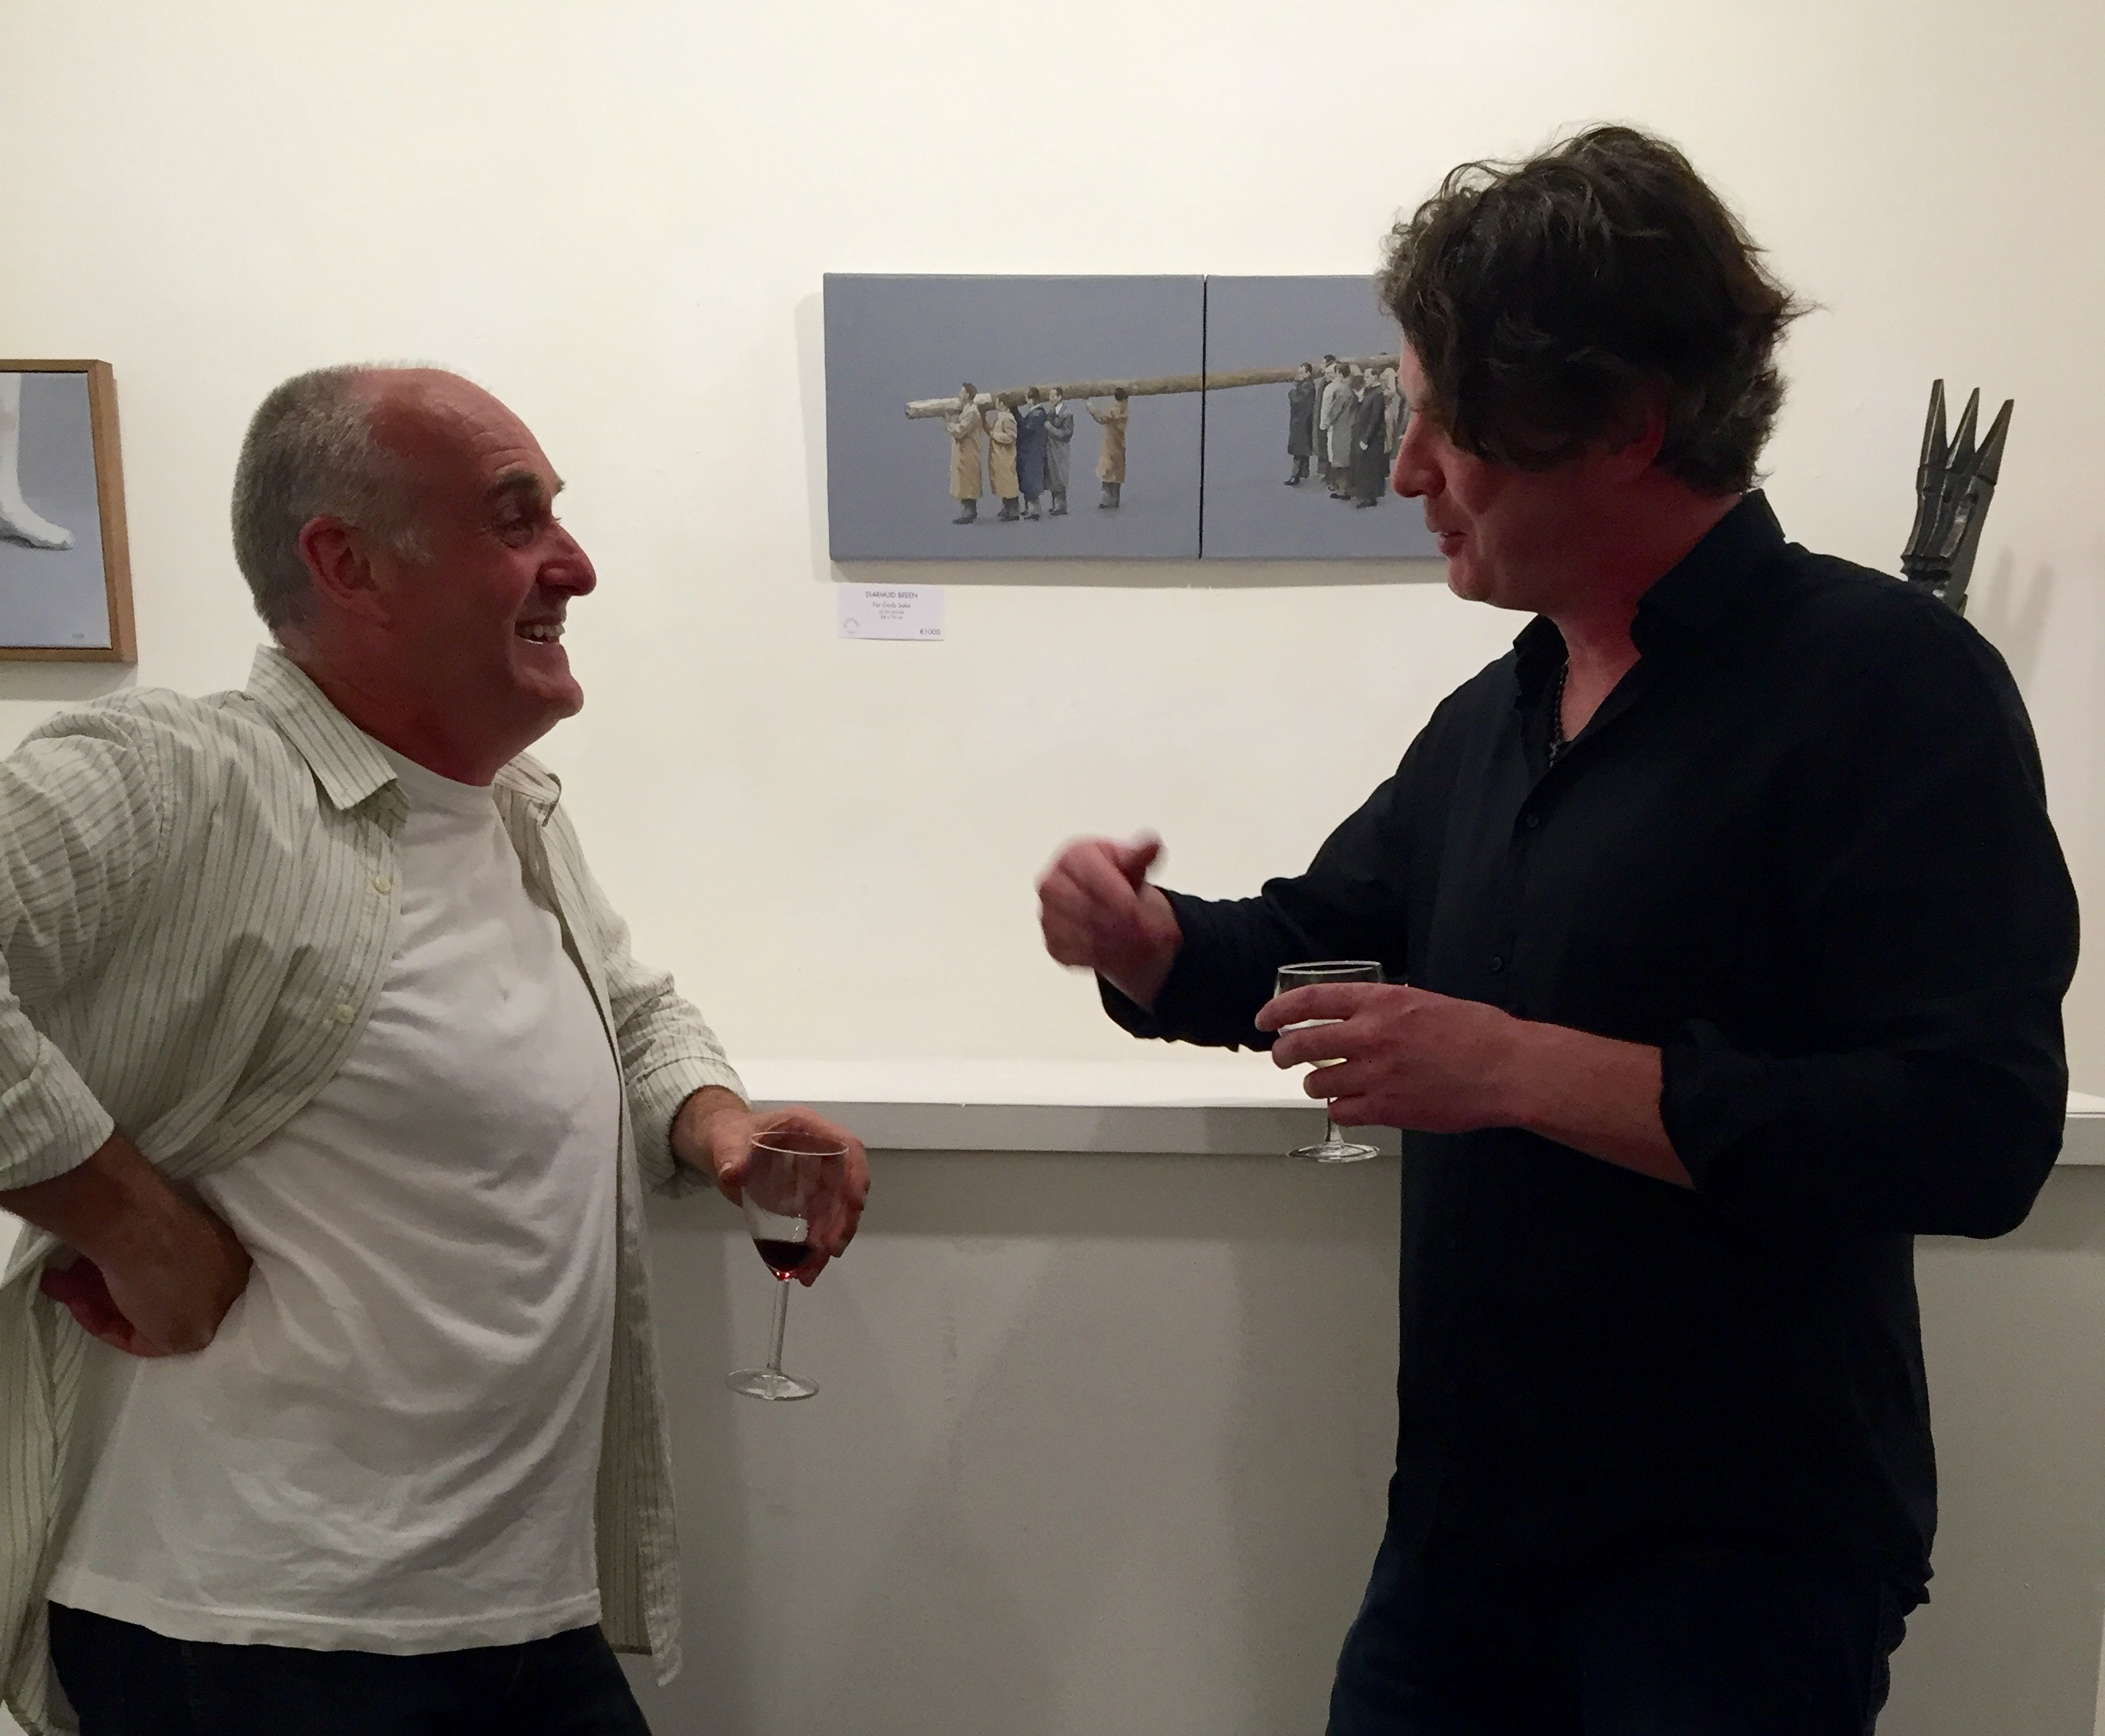 Diarmuid Breen catches up with fellow artist Donagh Carey.